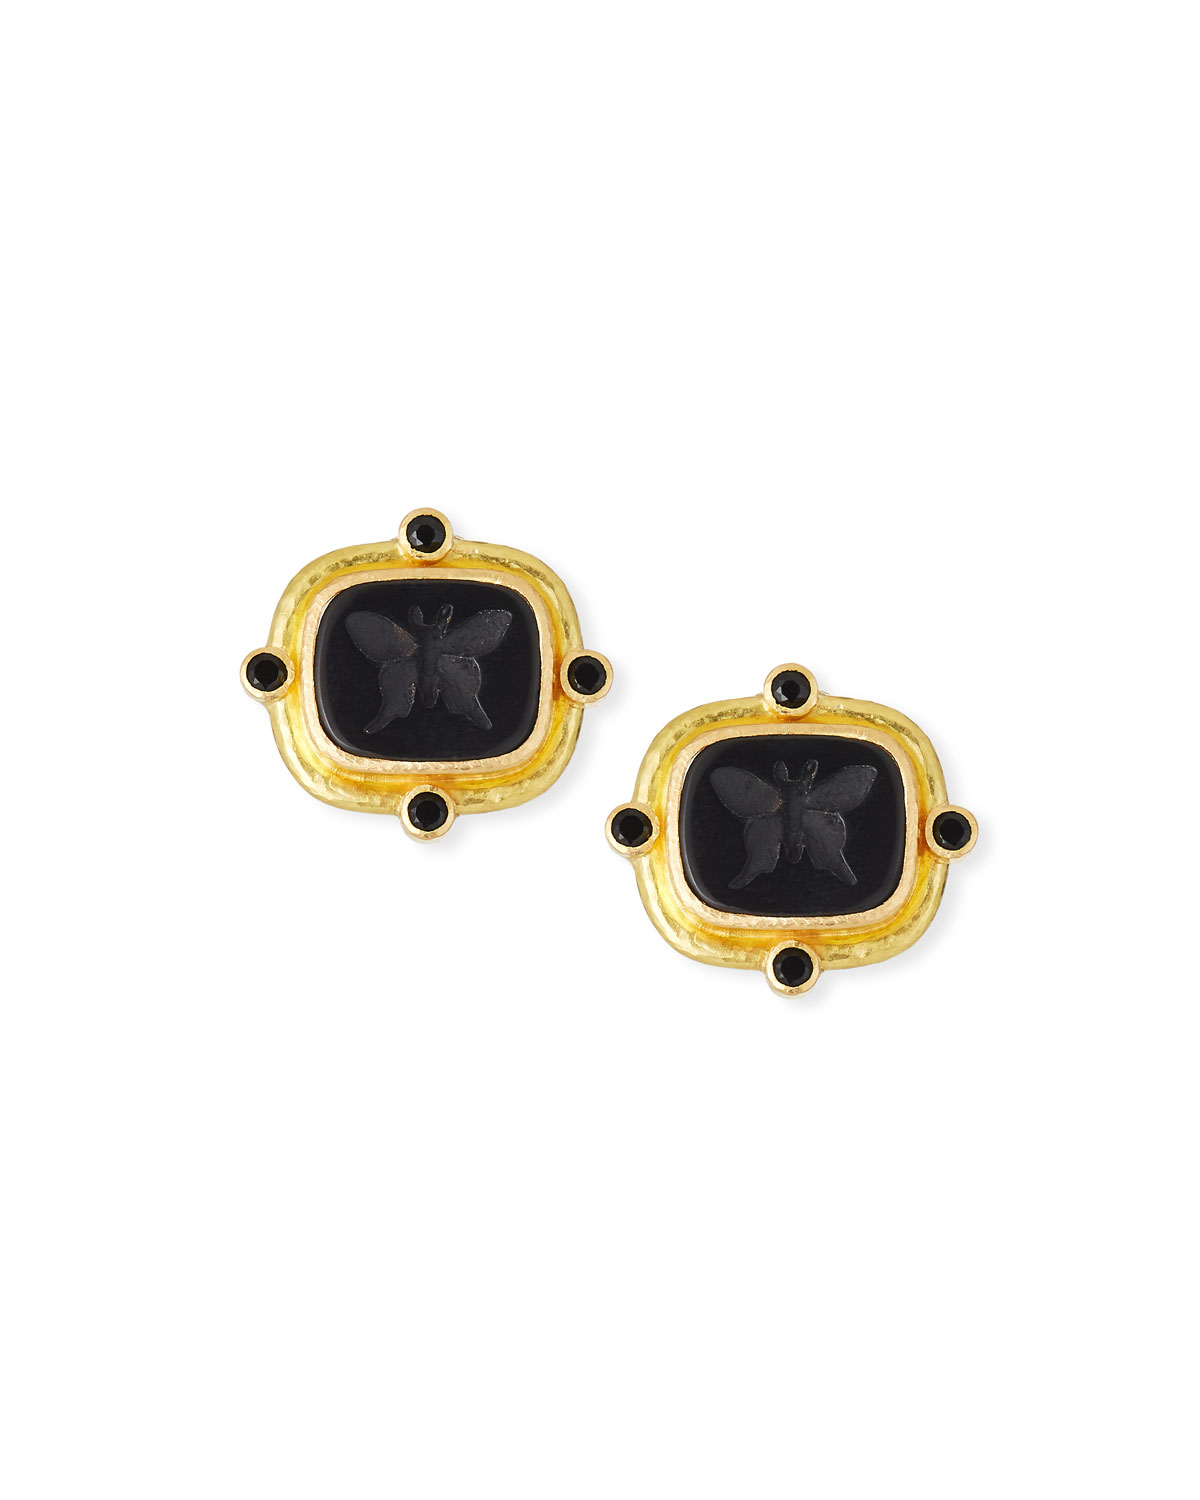 ELIZABETH LOCKE BUTTERFLY INTAGLIO CLIP/POST EARRINGS, BLACK